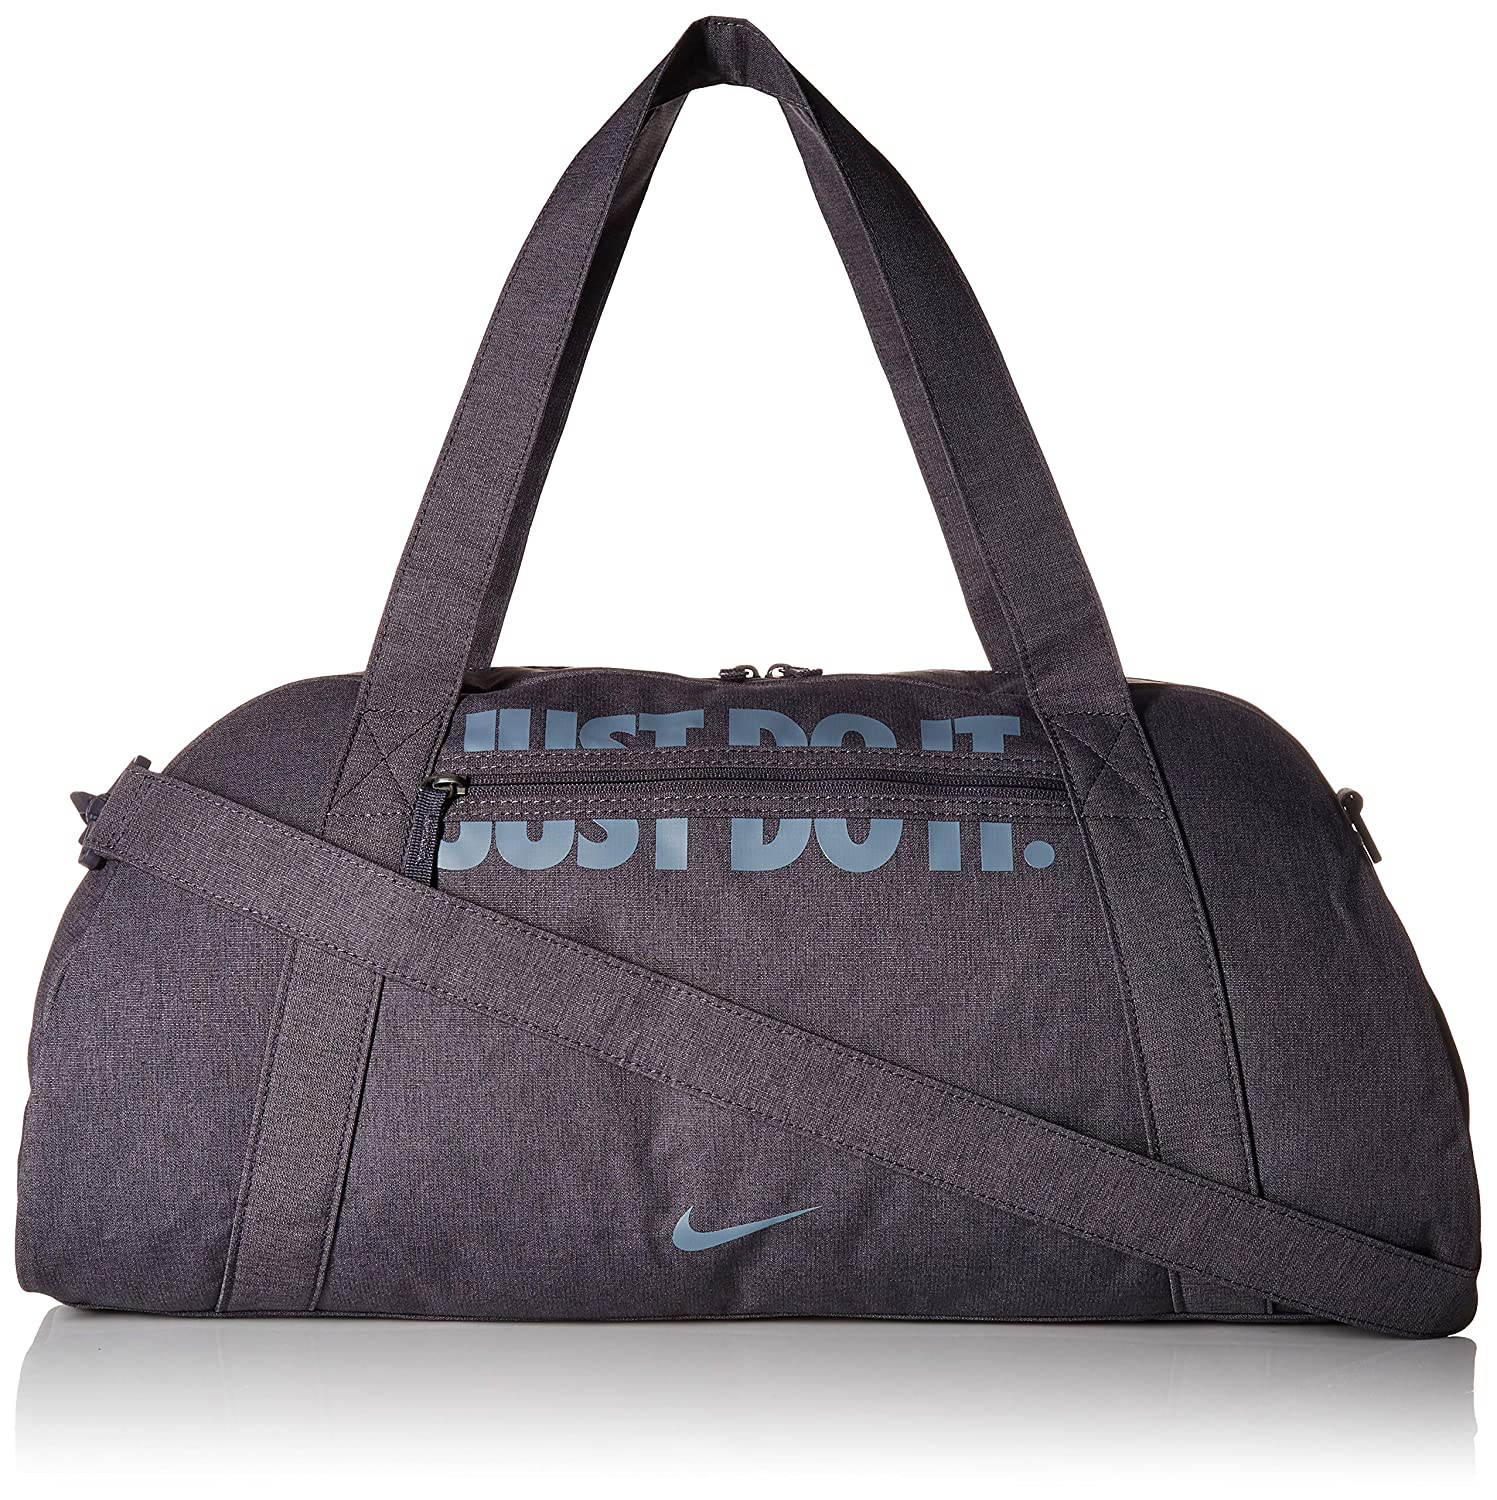 Nike Women s W Nk Gym Club Duffel Bag  Amazon.co.uk  Sports   Outdoors 0fff4f42e5dc8